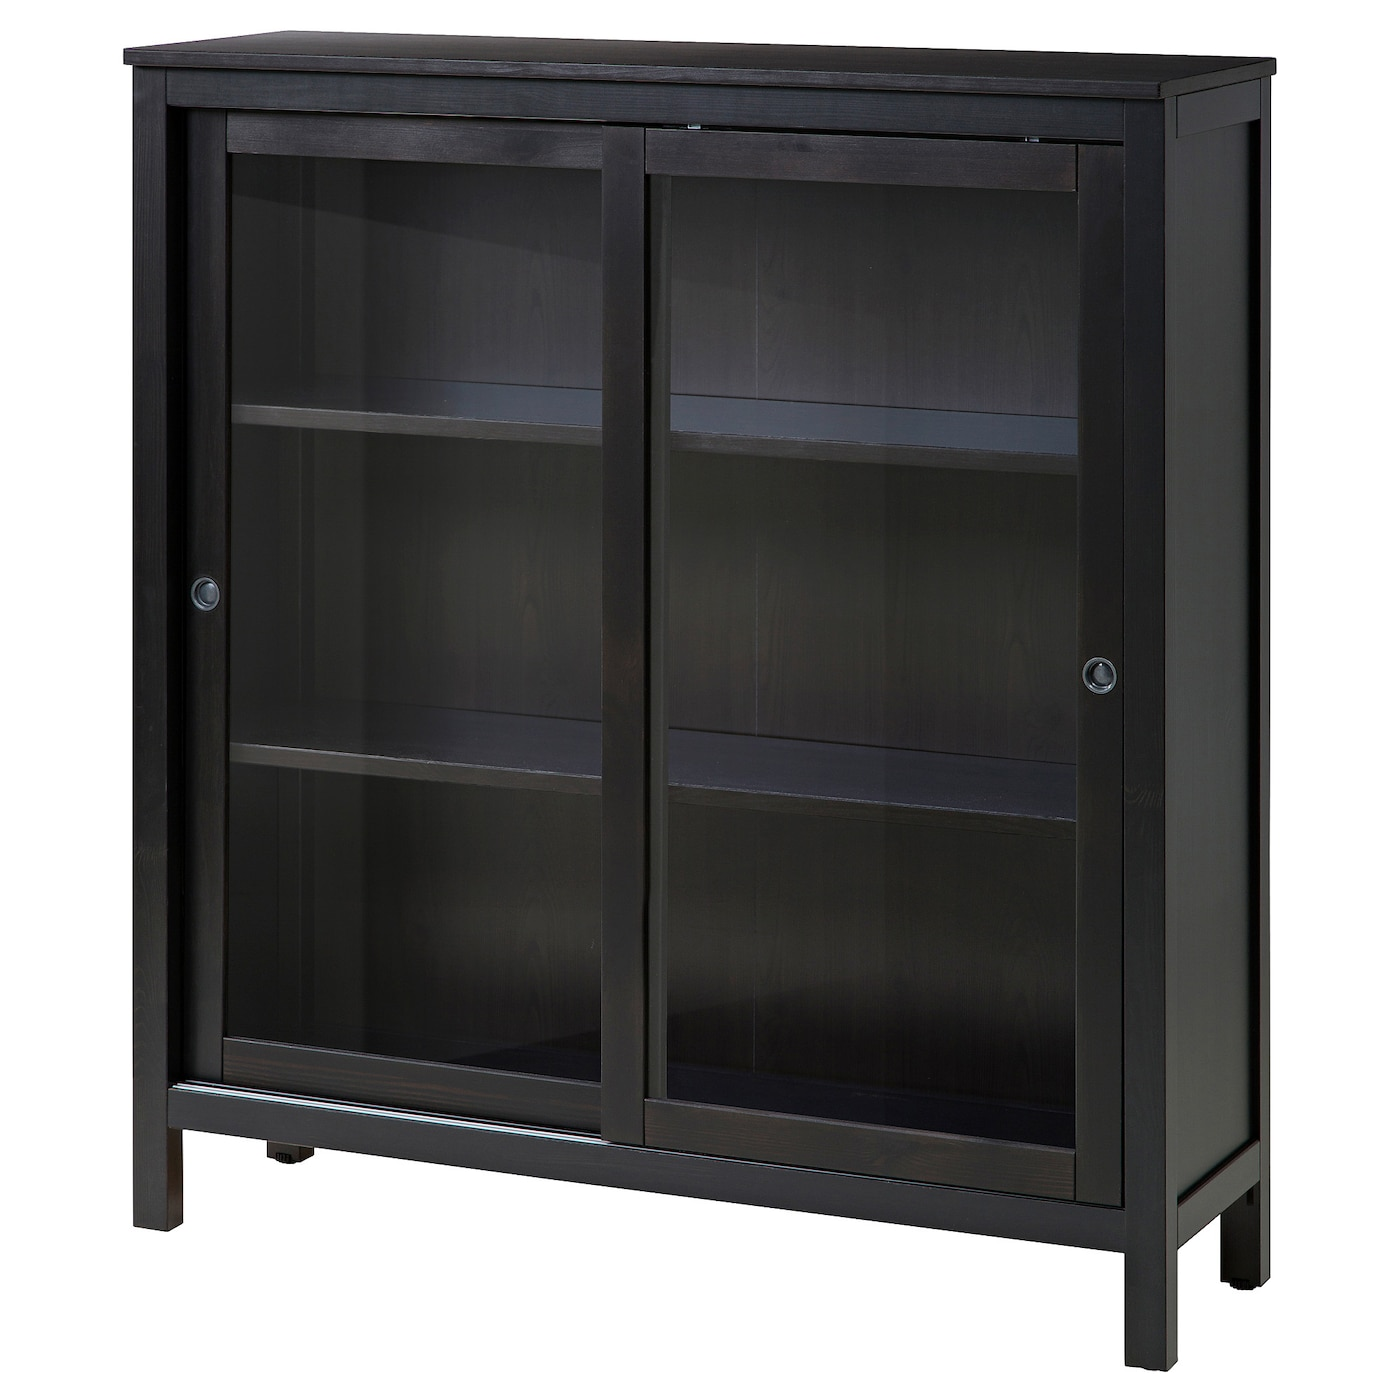 Storage cabinets storage cupboards ikea ireland Glass cabinet doors